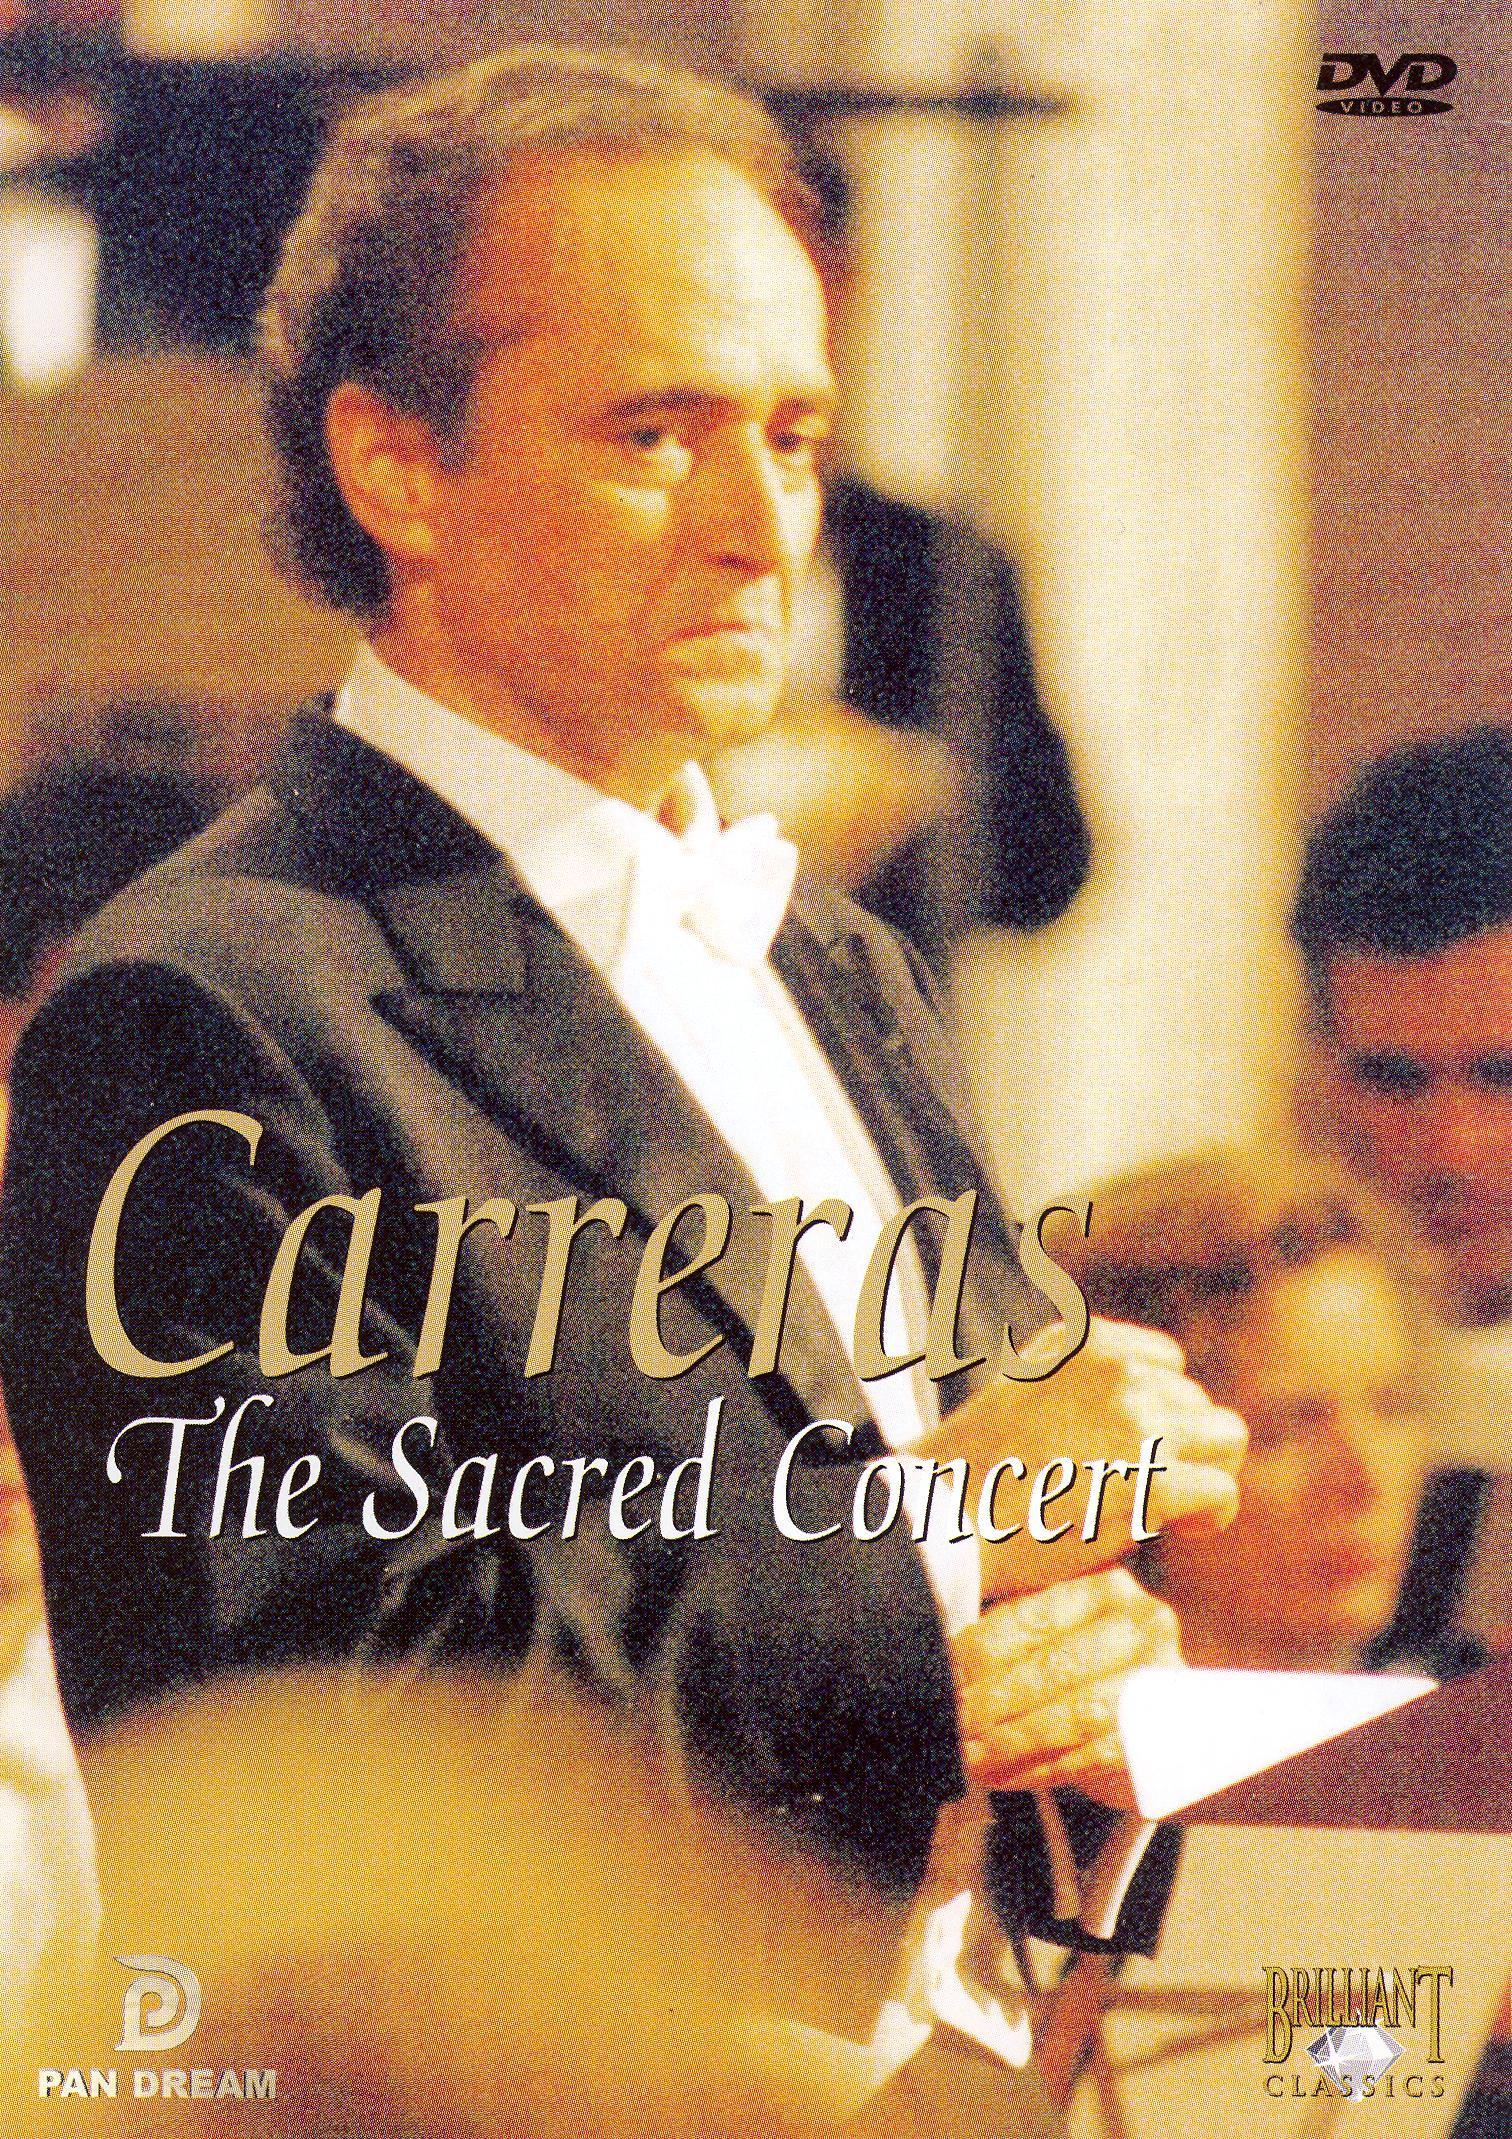 Jose Carreras: The Sacred Concert